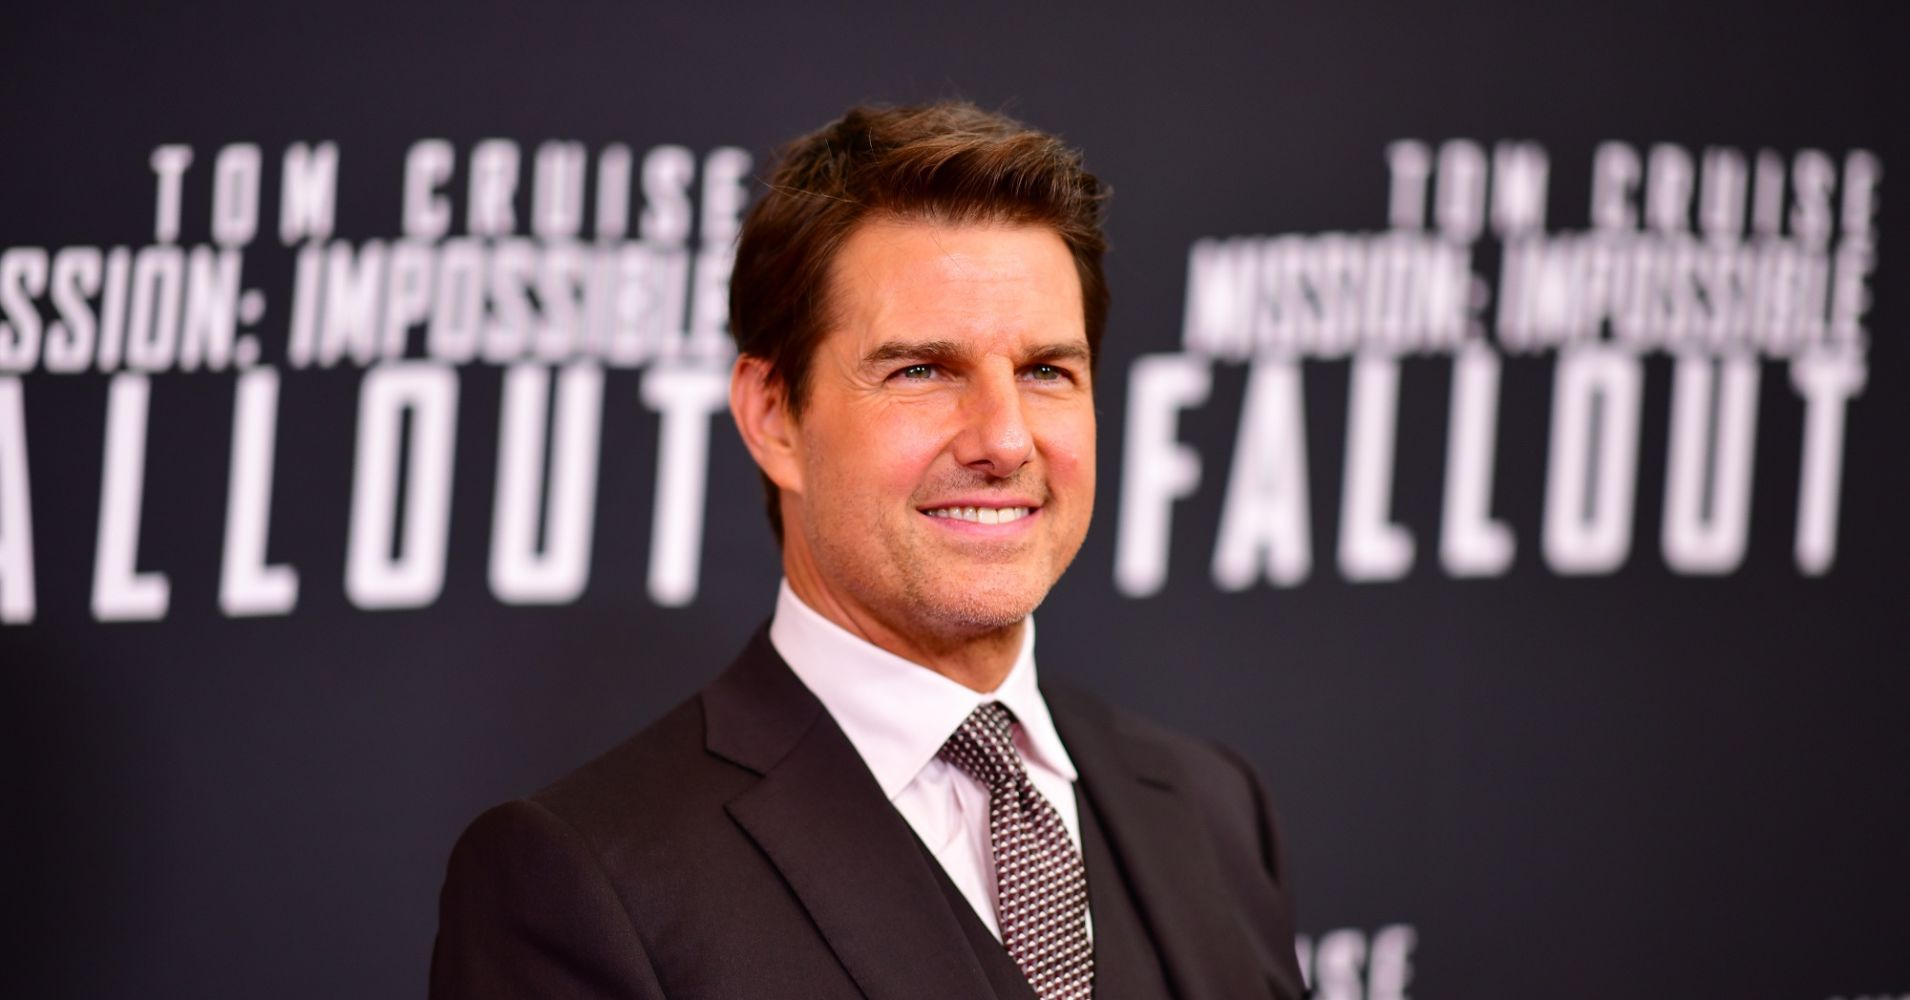 Tom Cruise Wants You To Watch Mission Impossible The Right